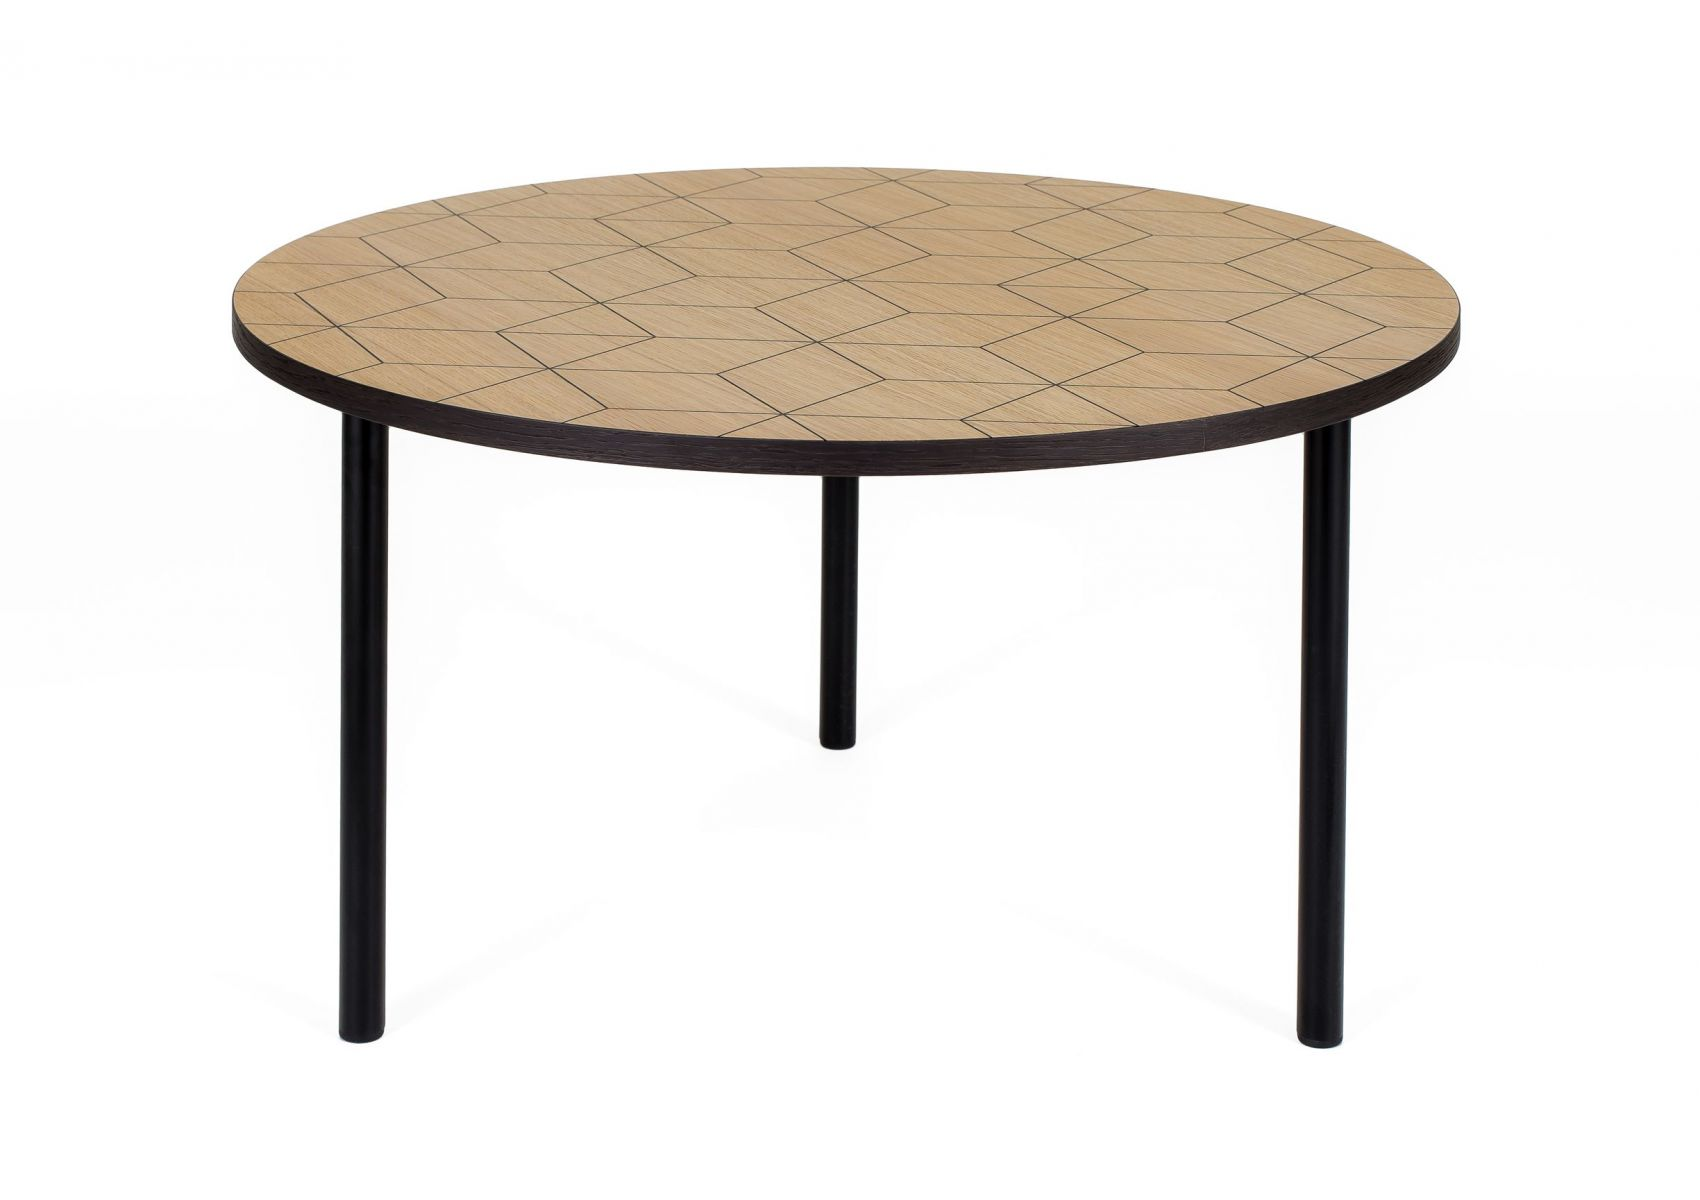 table basse ronde avec motifs g om triques arty de chez woodman. Black Bedroom Furniture Sets. Home Design Ideas